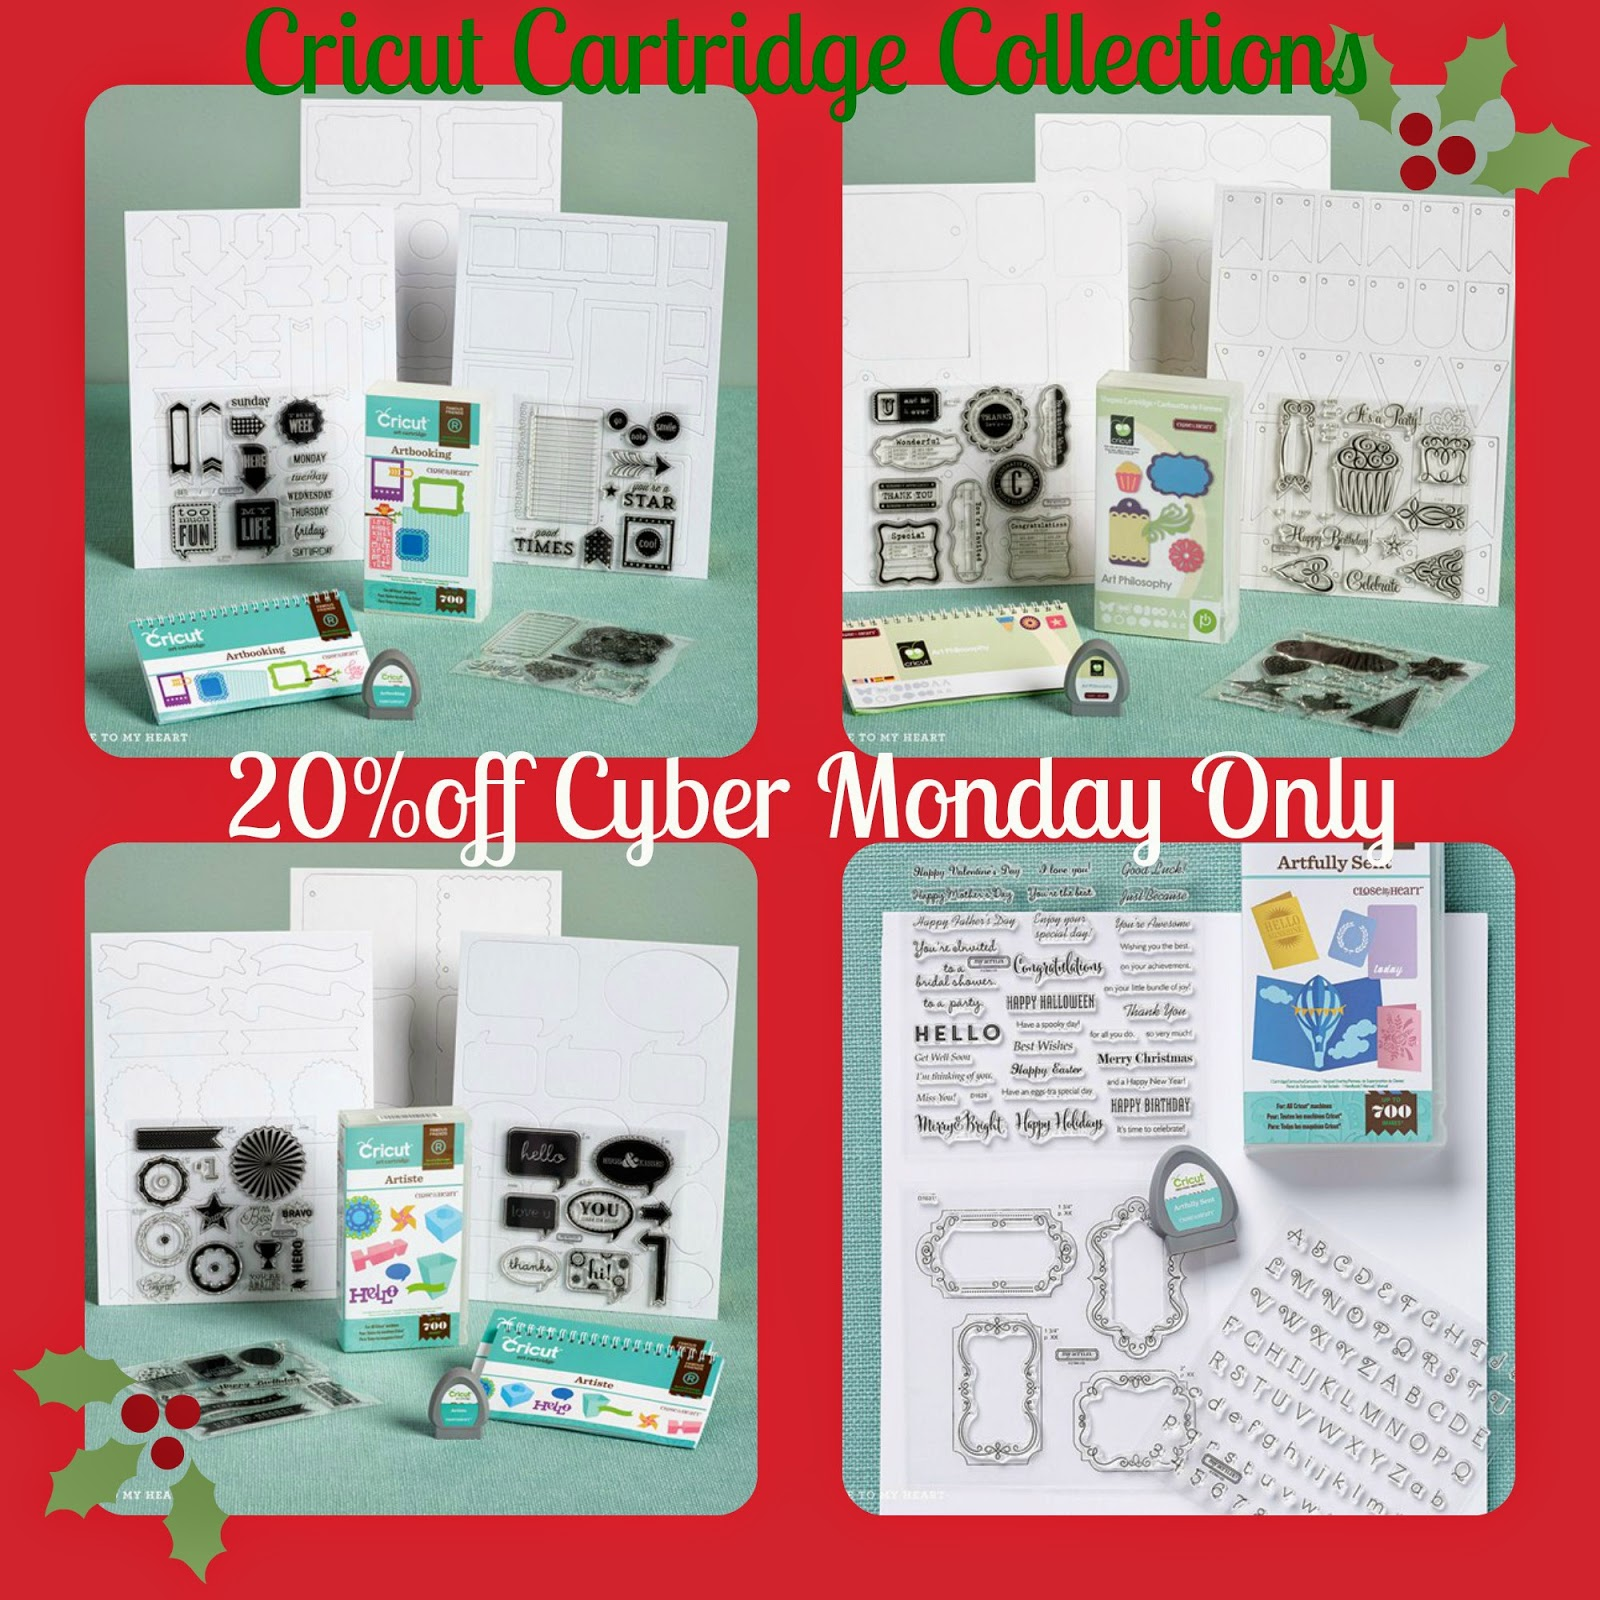 Mimi 39 s craft room close to my heart cyber monday sale for Rooms to go cyber monday